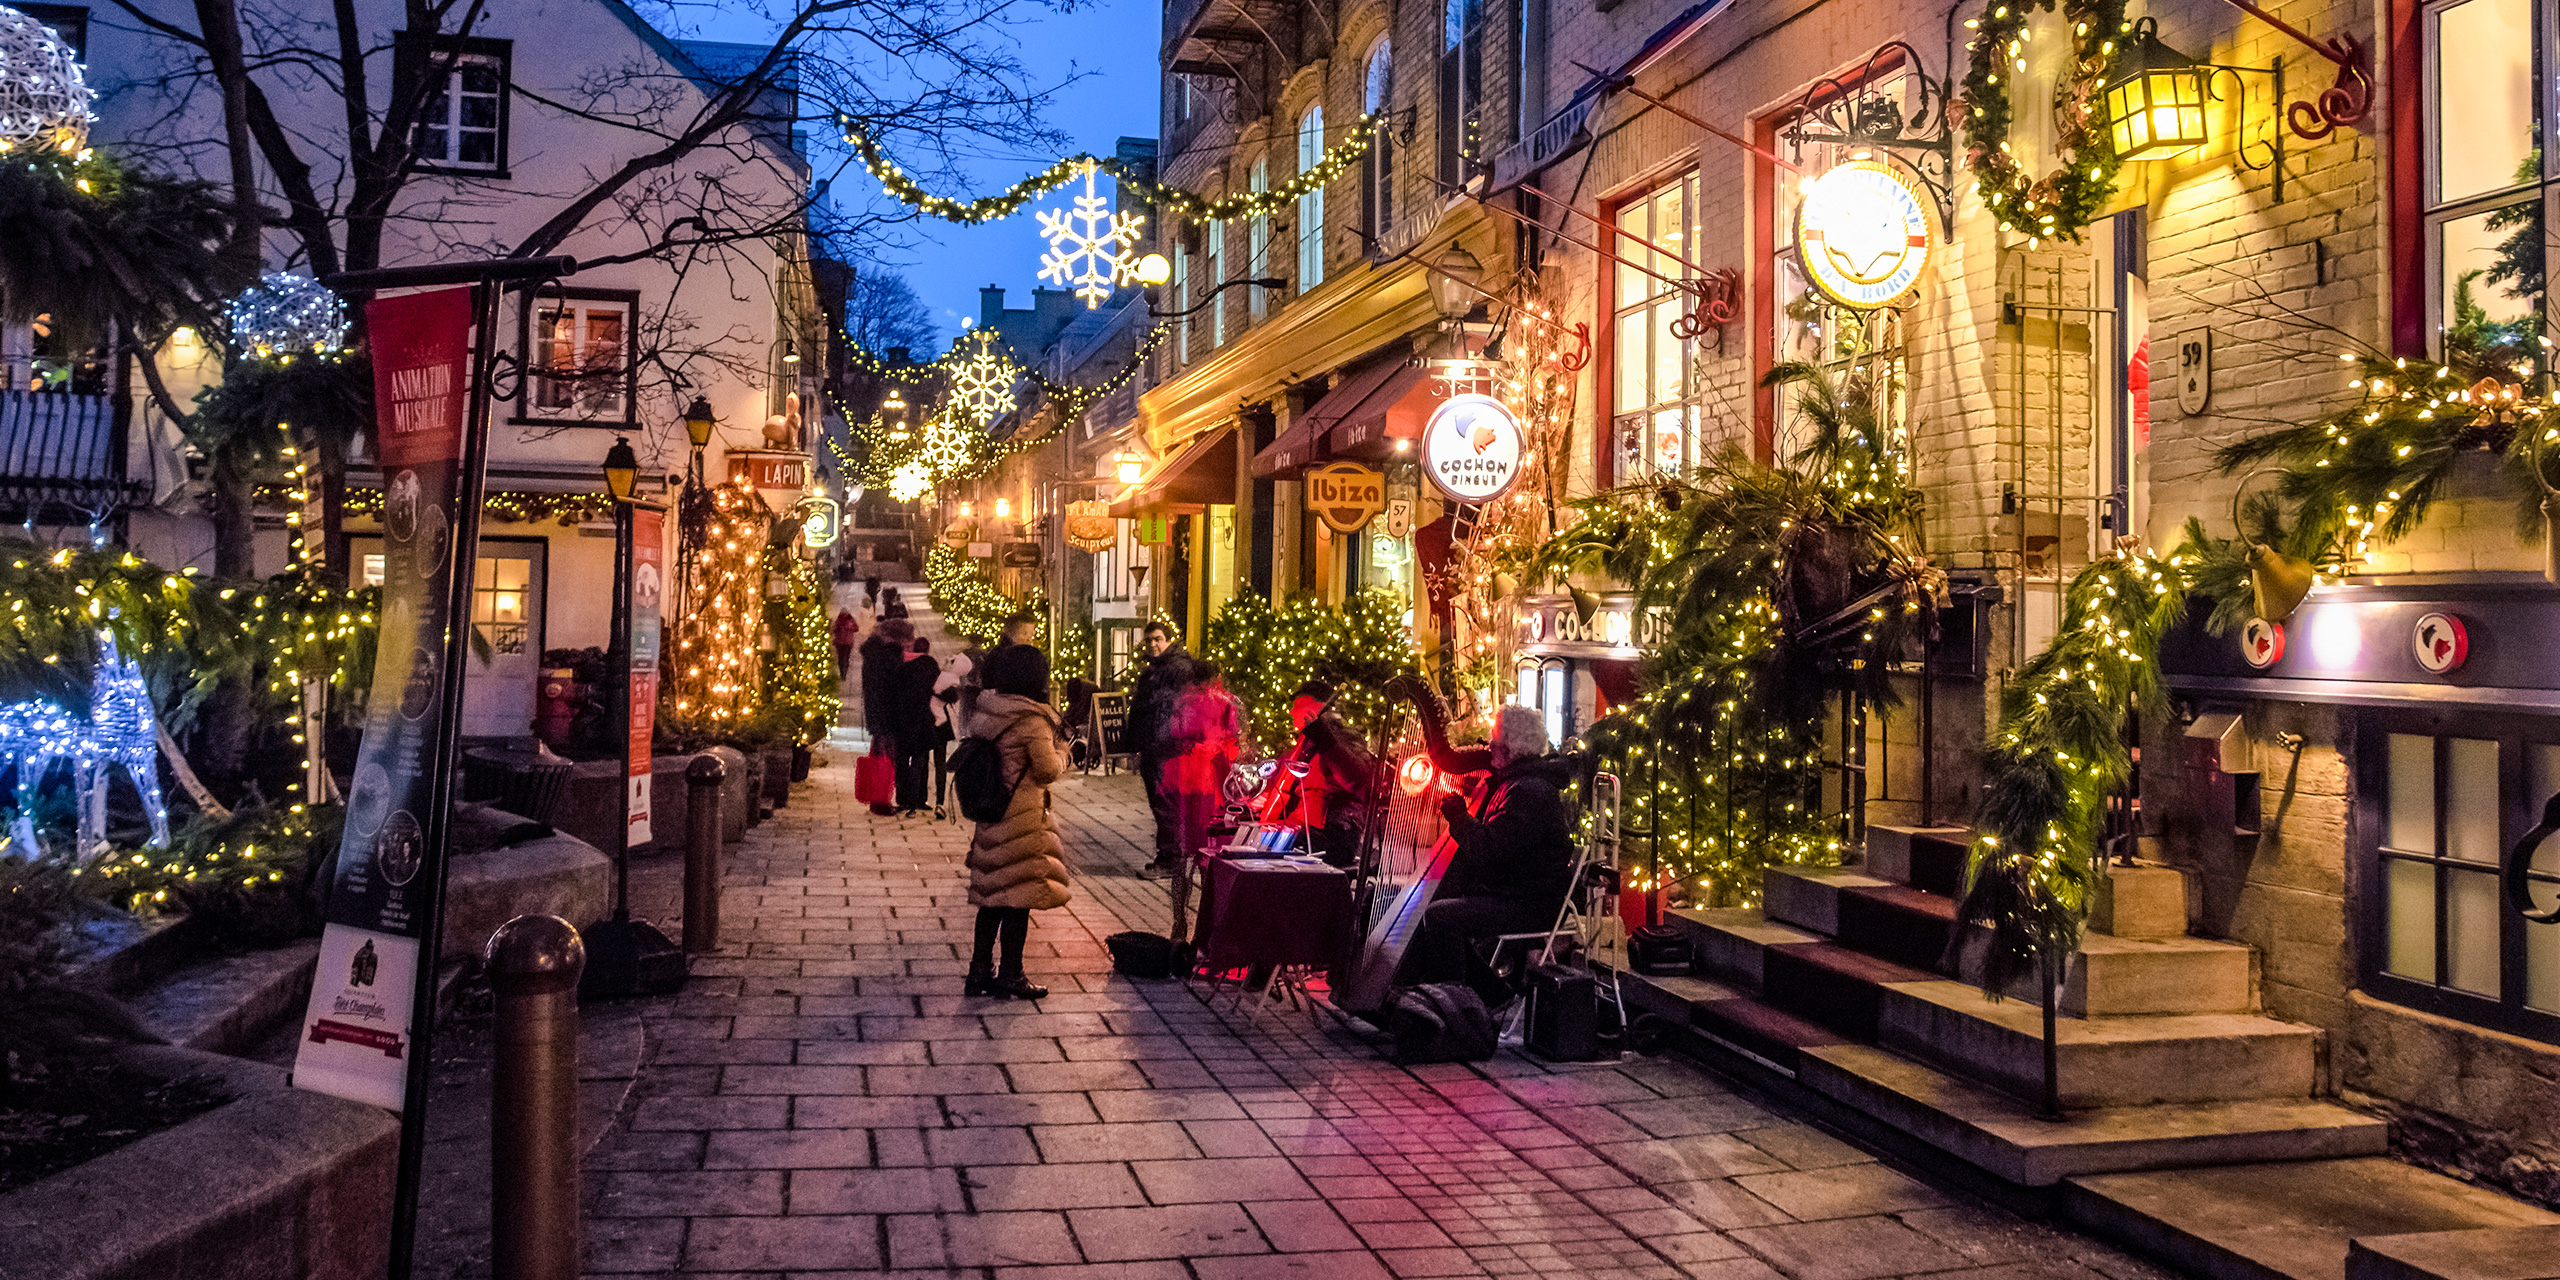 quebec city montreal holiday street; Courtesy of By AnjelikaGr/Shutterstock